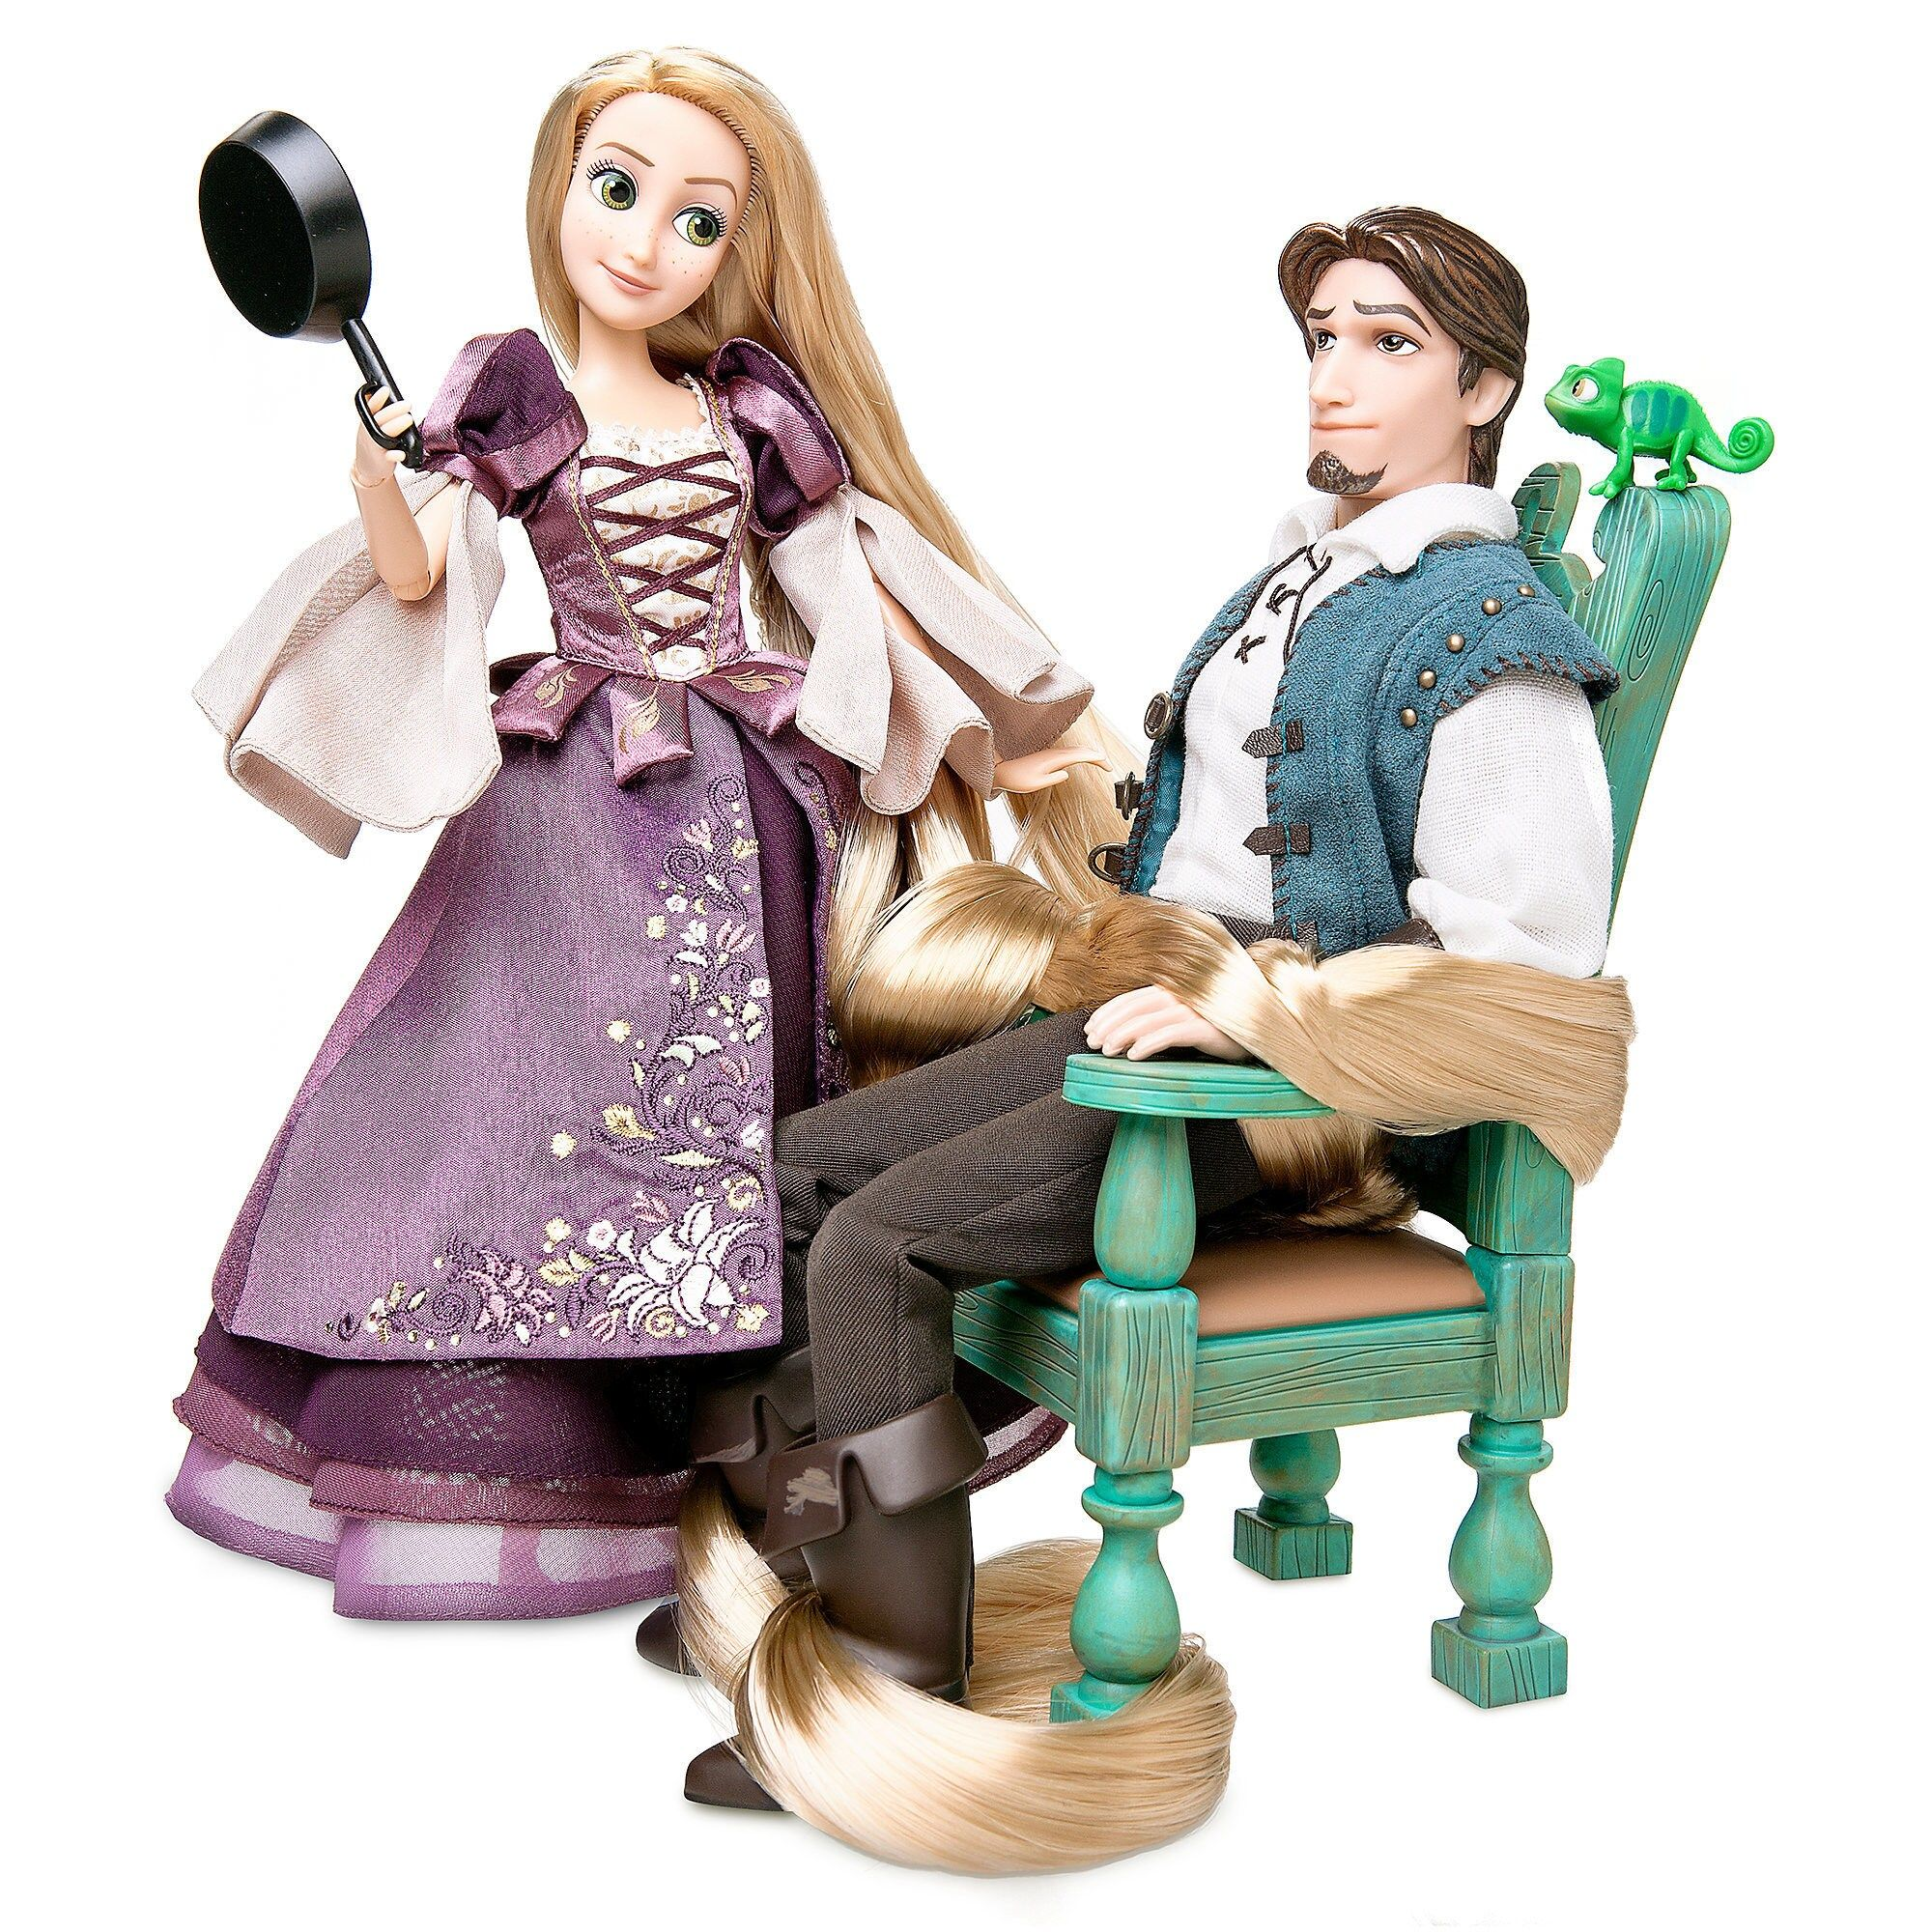 Rapunzel And Flynn Doll Set Disney Designer Fairytale Collection Limited Edition Shopdisney In 2020 Disney Rapunzel Doll Sets Disney Princess Dolls